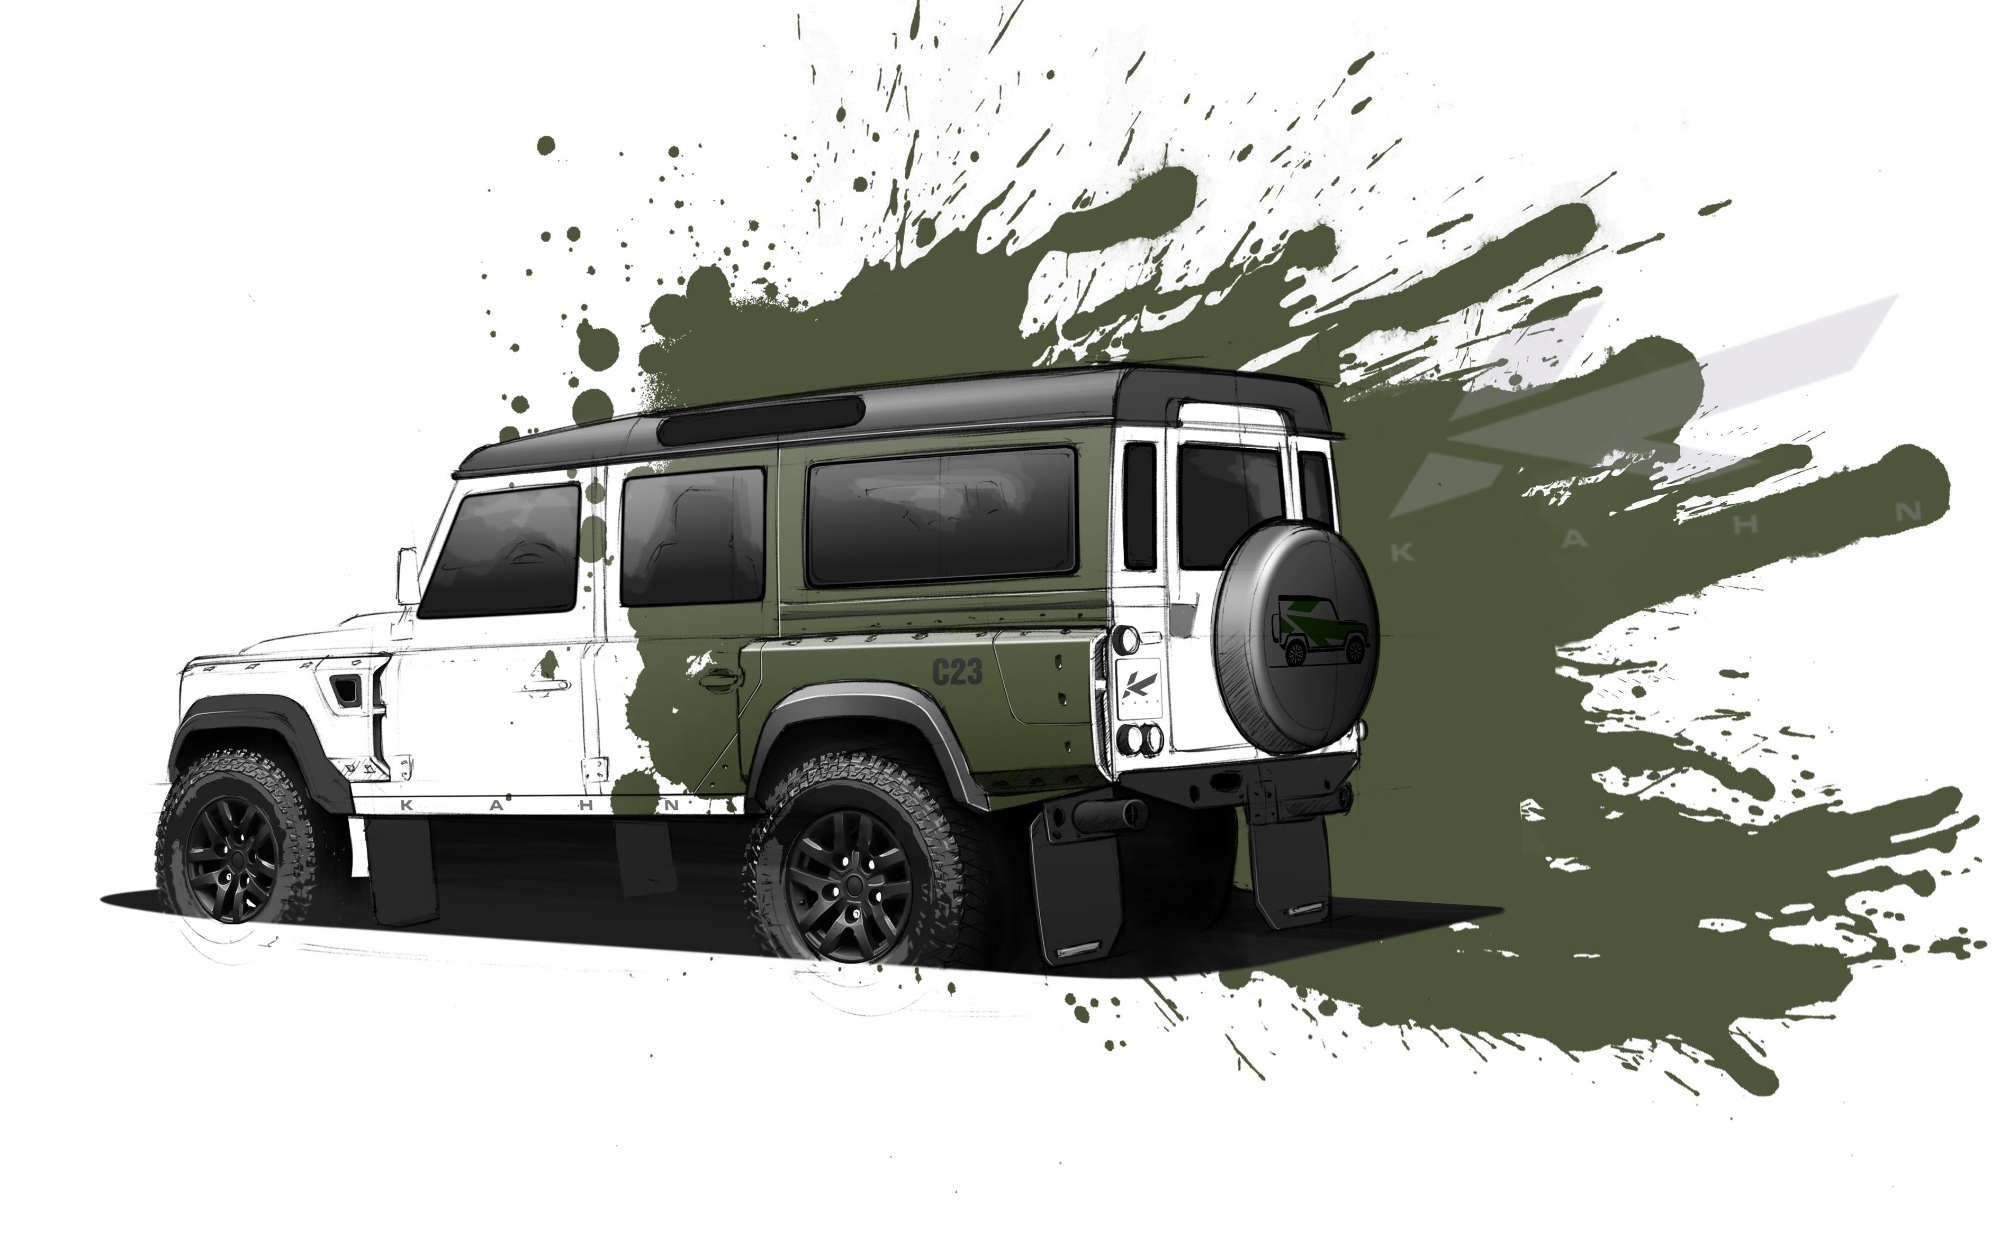 https://s1.cdn.autoevolution.com/images/news/kahn-teases-land-rover-defender-110-tuning-concept-54883_1.jpg